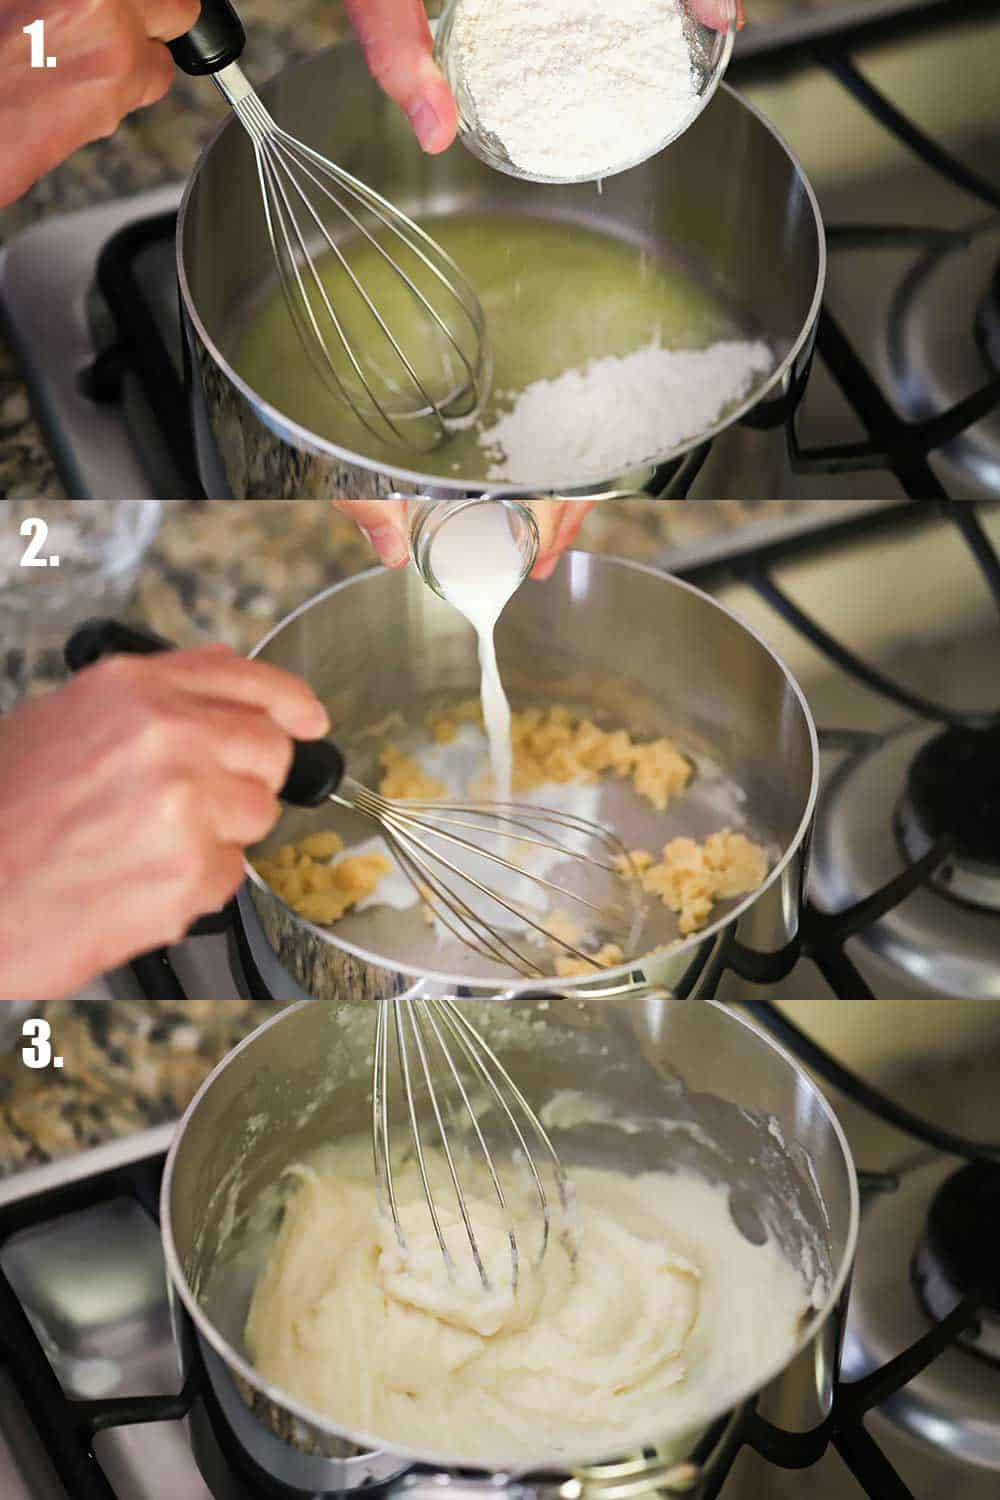 Three stacked images with the top showing flour being dropped into pan with melted butter, then next of milk being poured into the pan with a roux, and the bottom a whisk stirring the bechamel sauce.